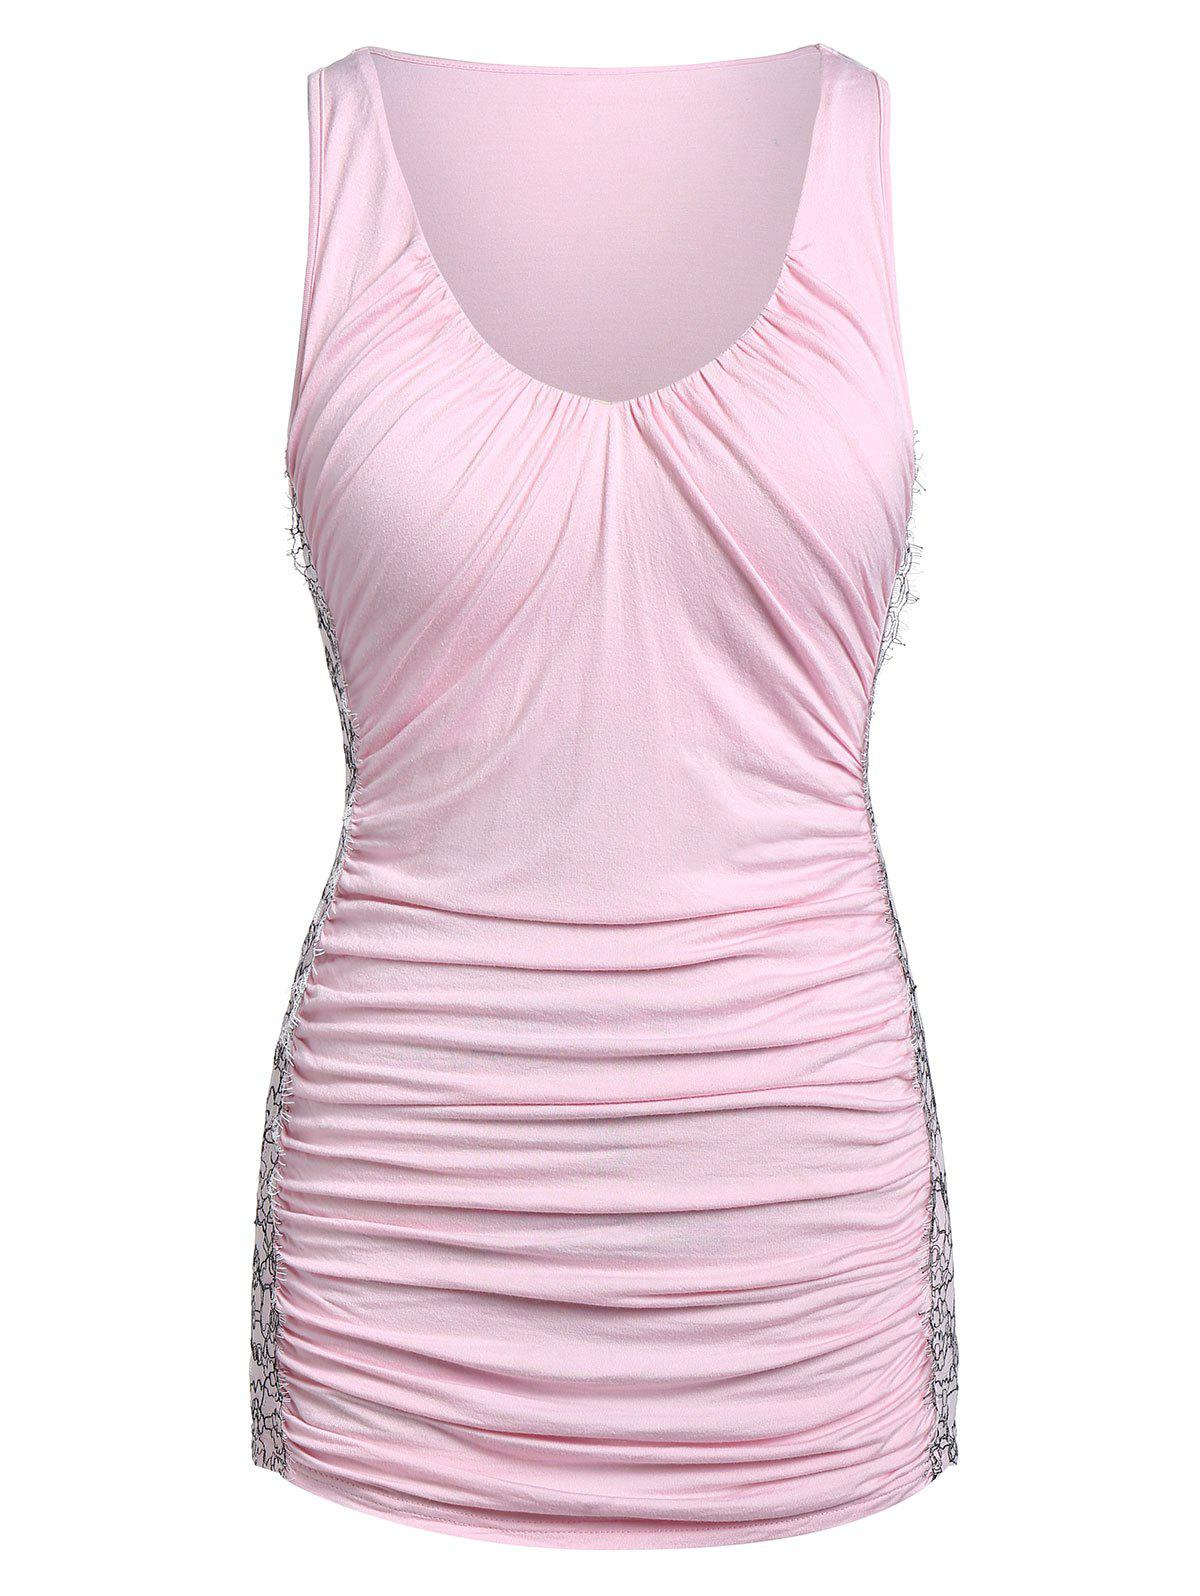 Shop Lace Insert Plunging Neck Ruched Tank Top